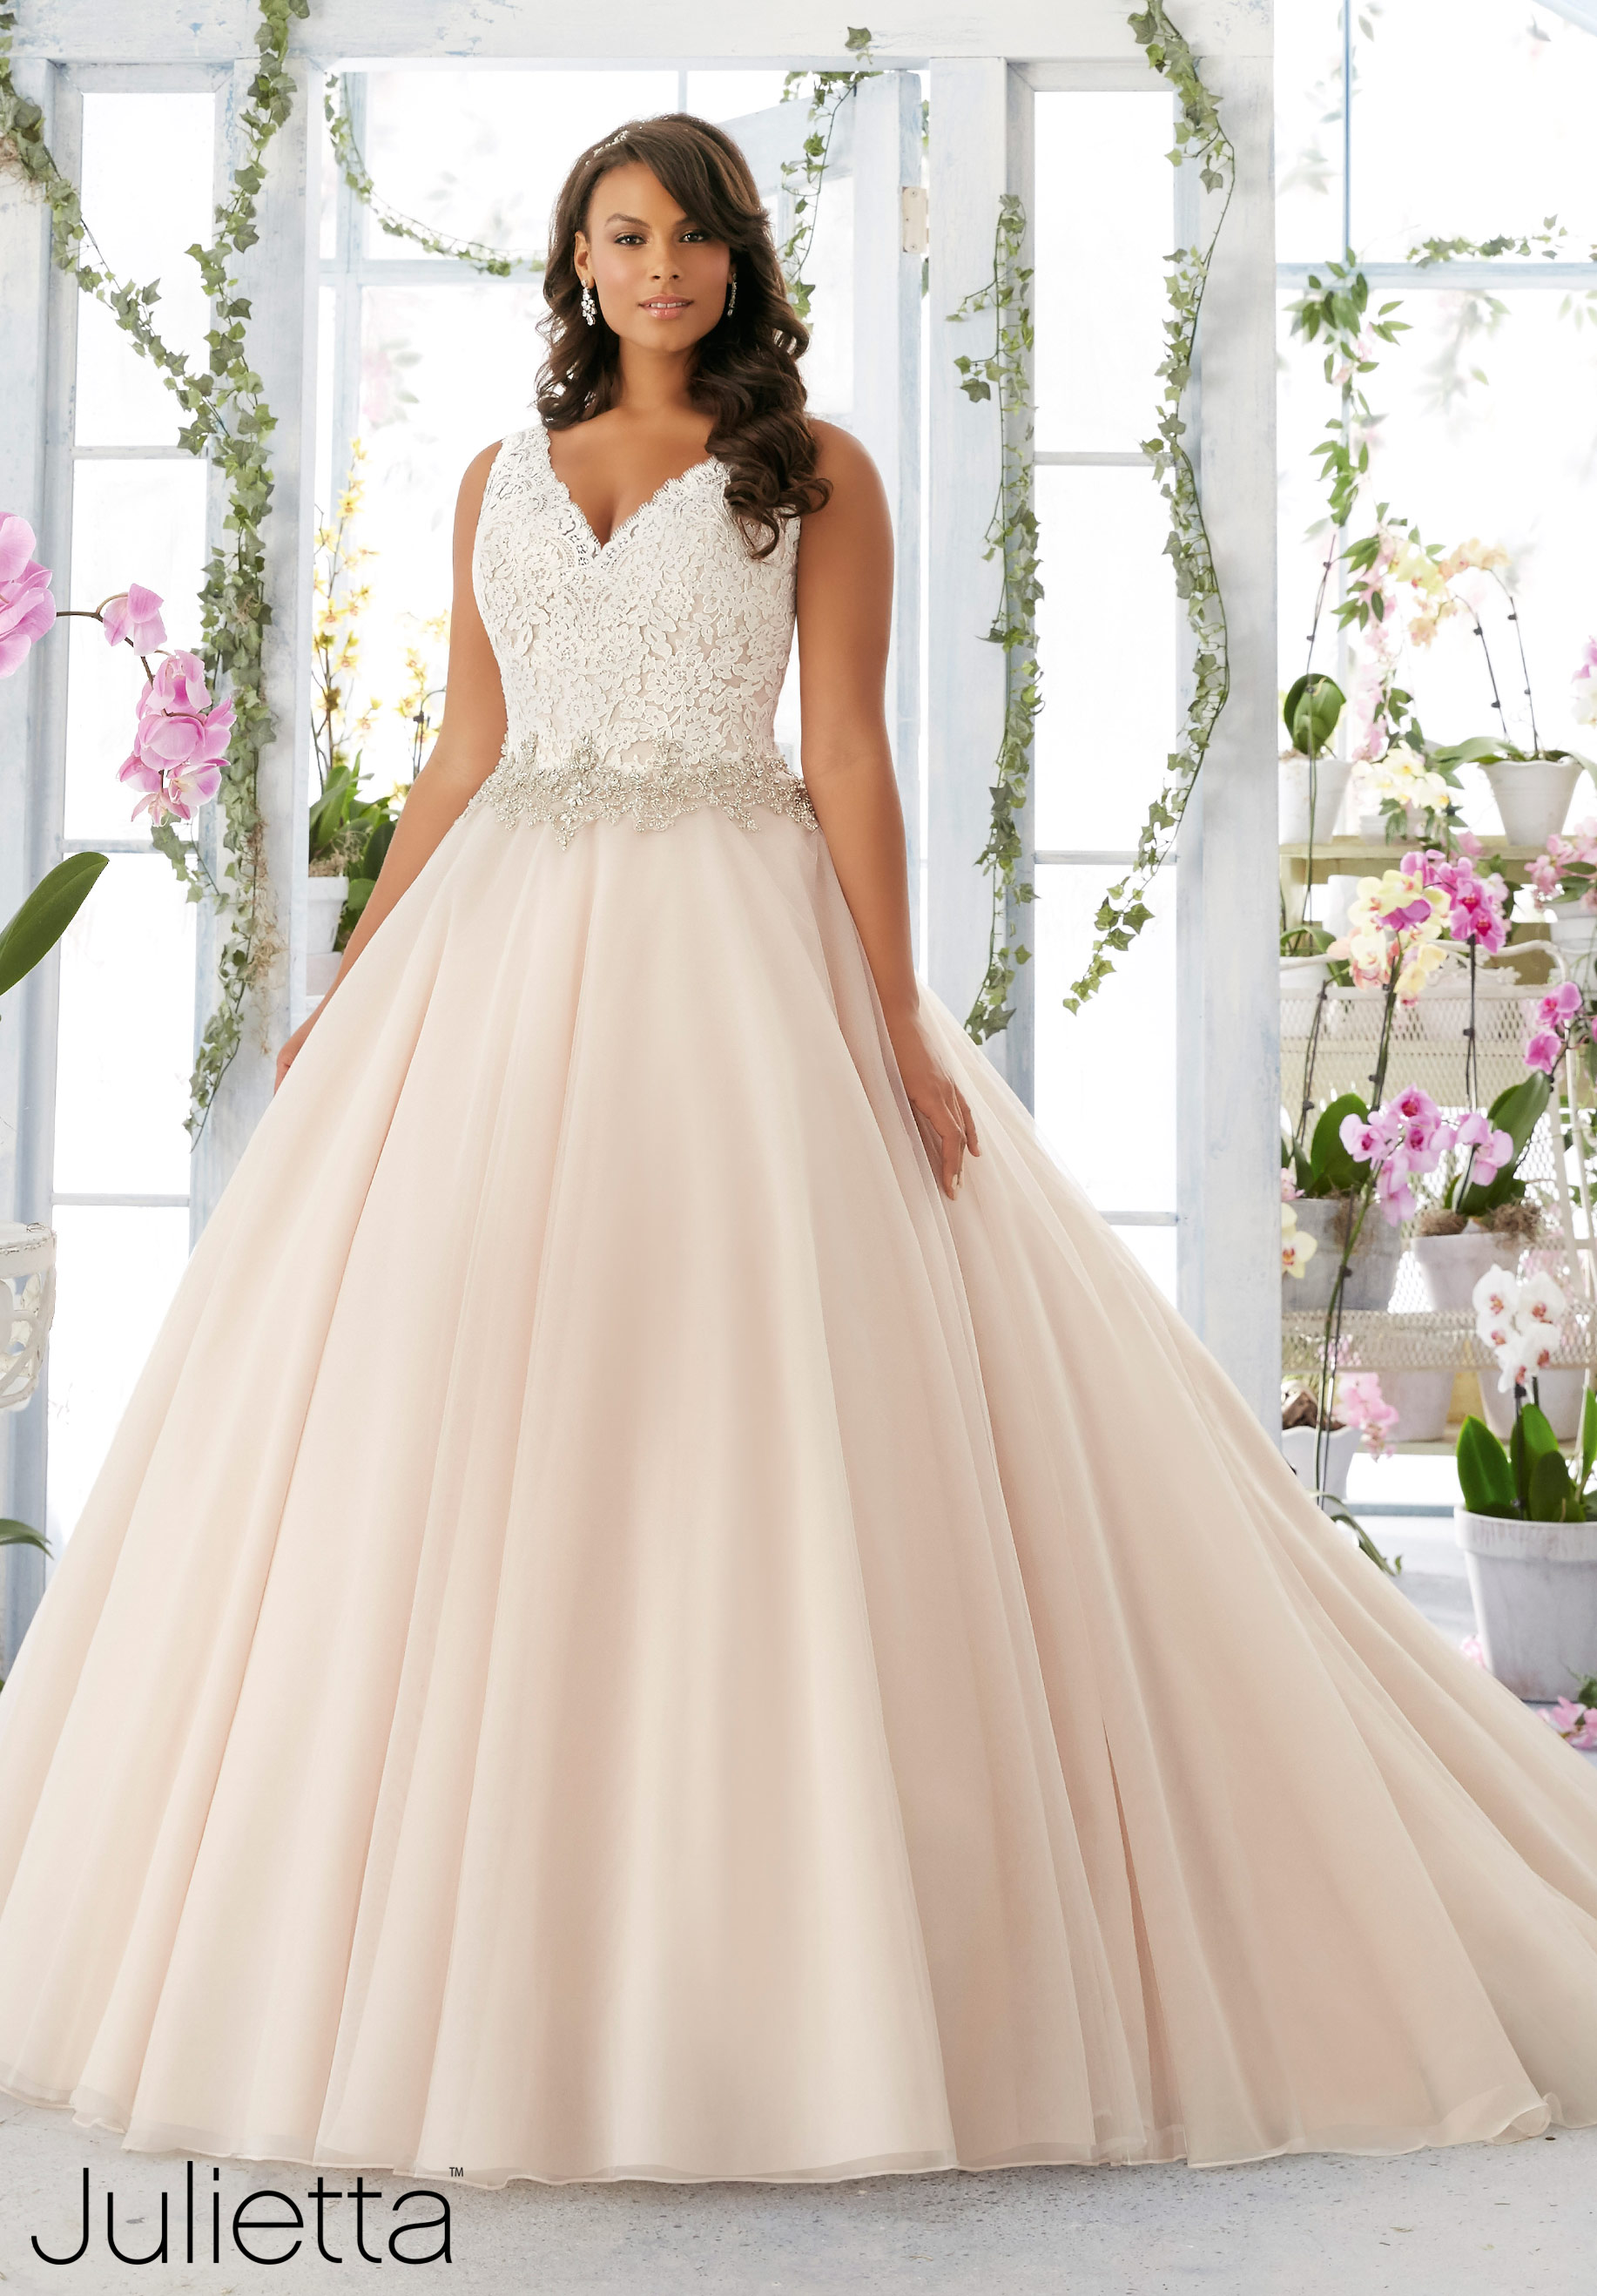 Plus Size Wedding Gown of the Day New Julietta